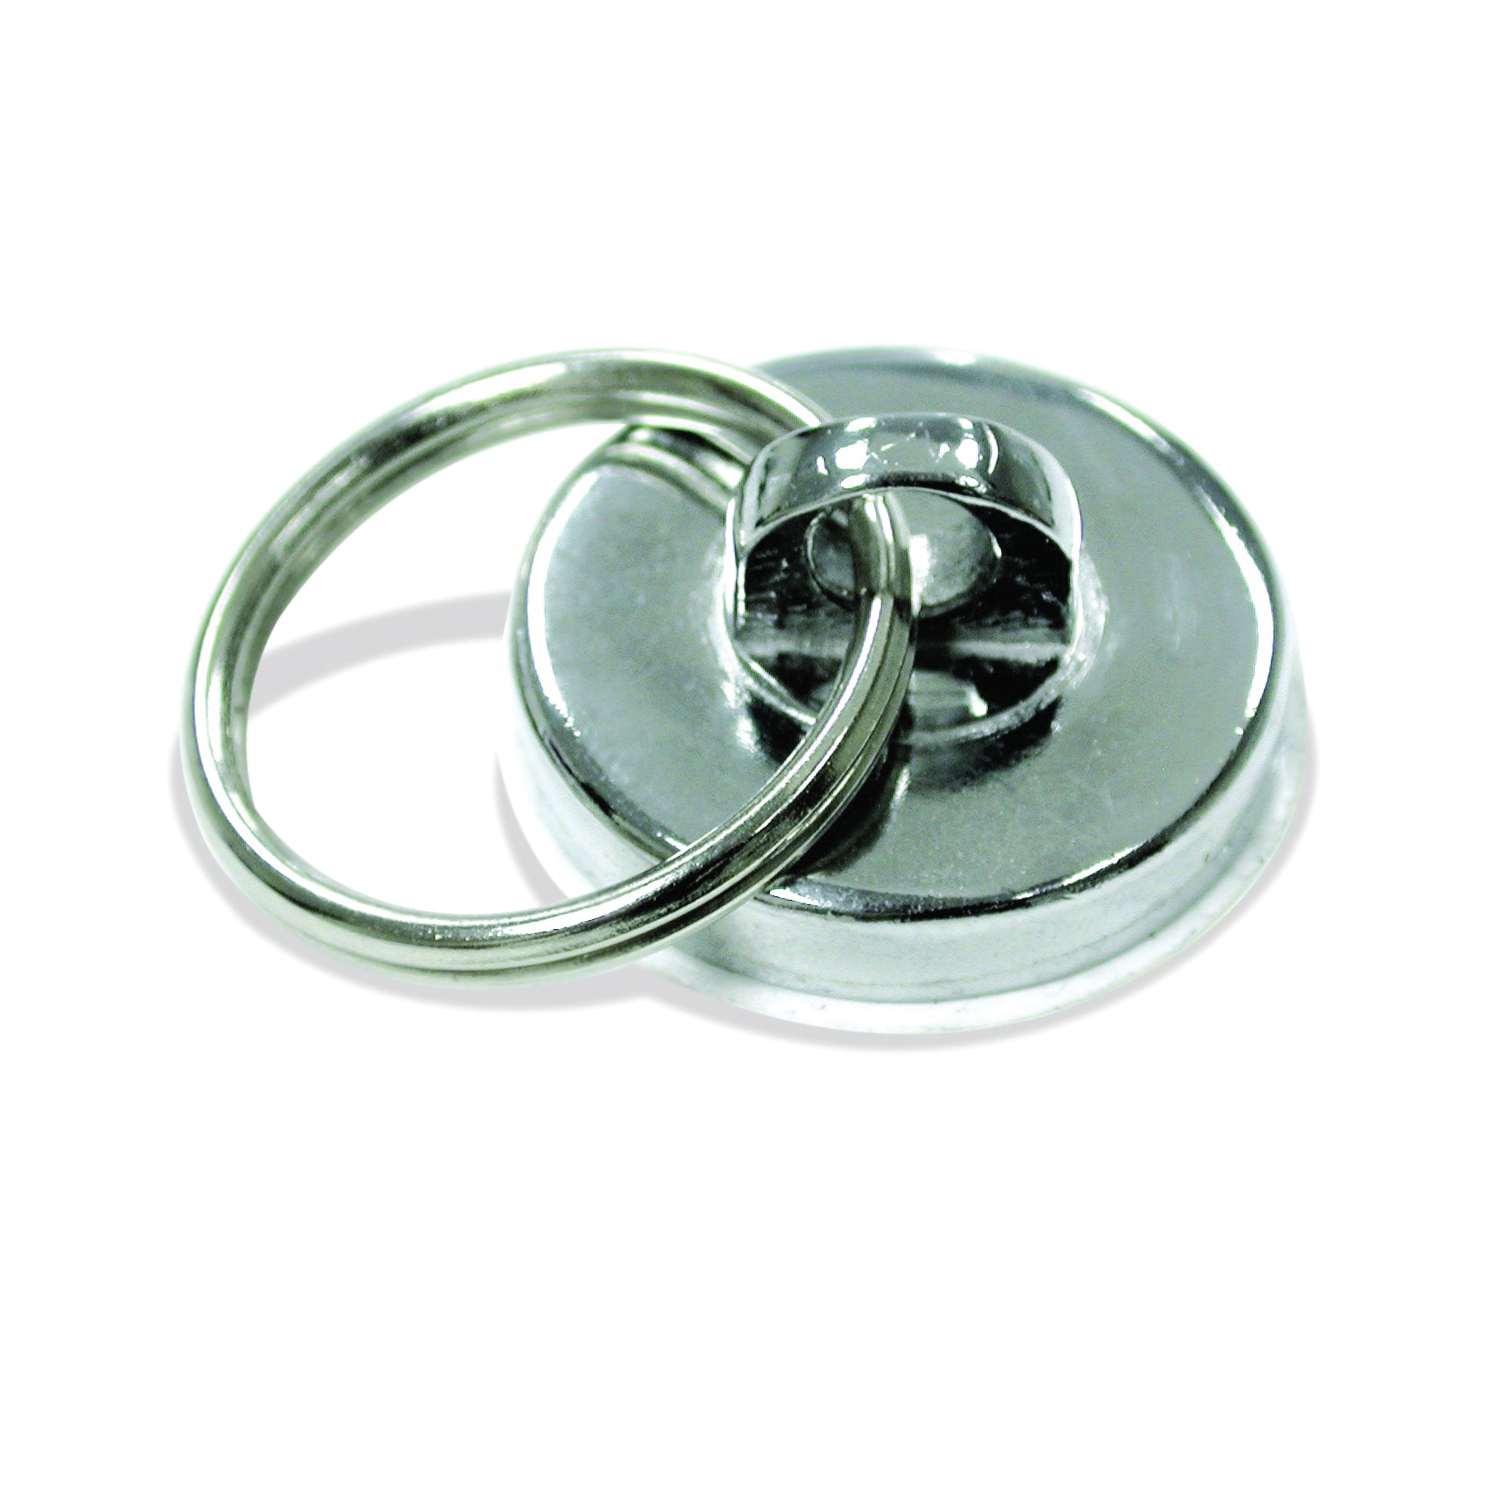 Picture of Magnet Source 07287 Magnetic Hook, Neodymium